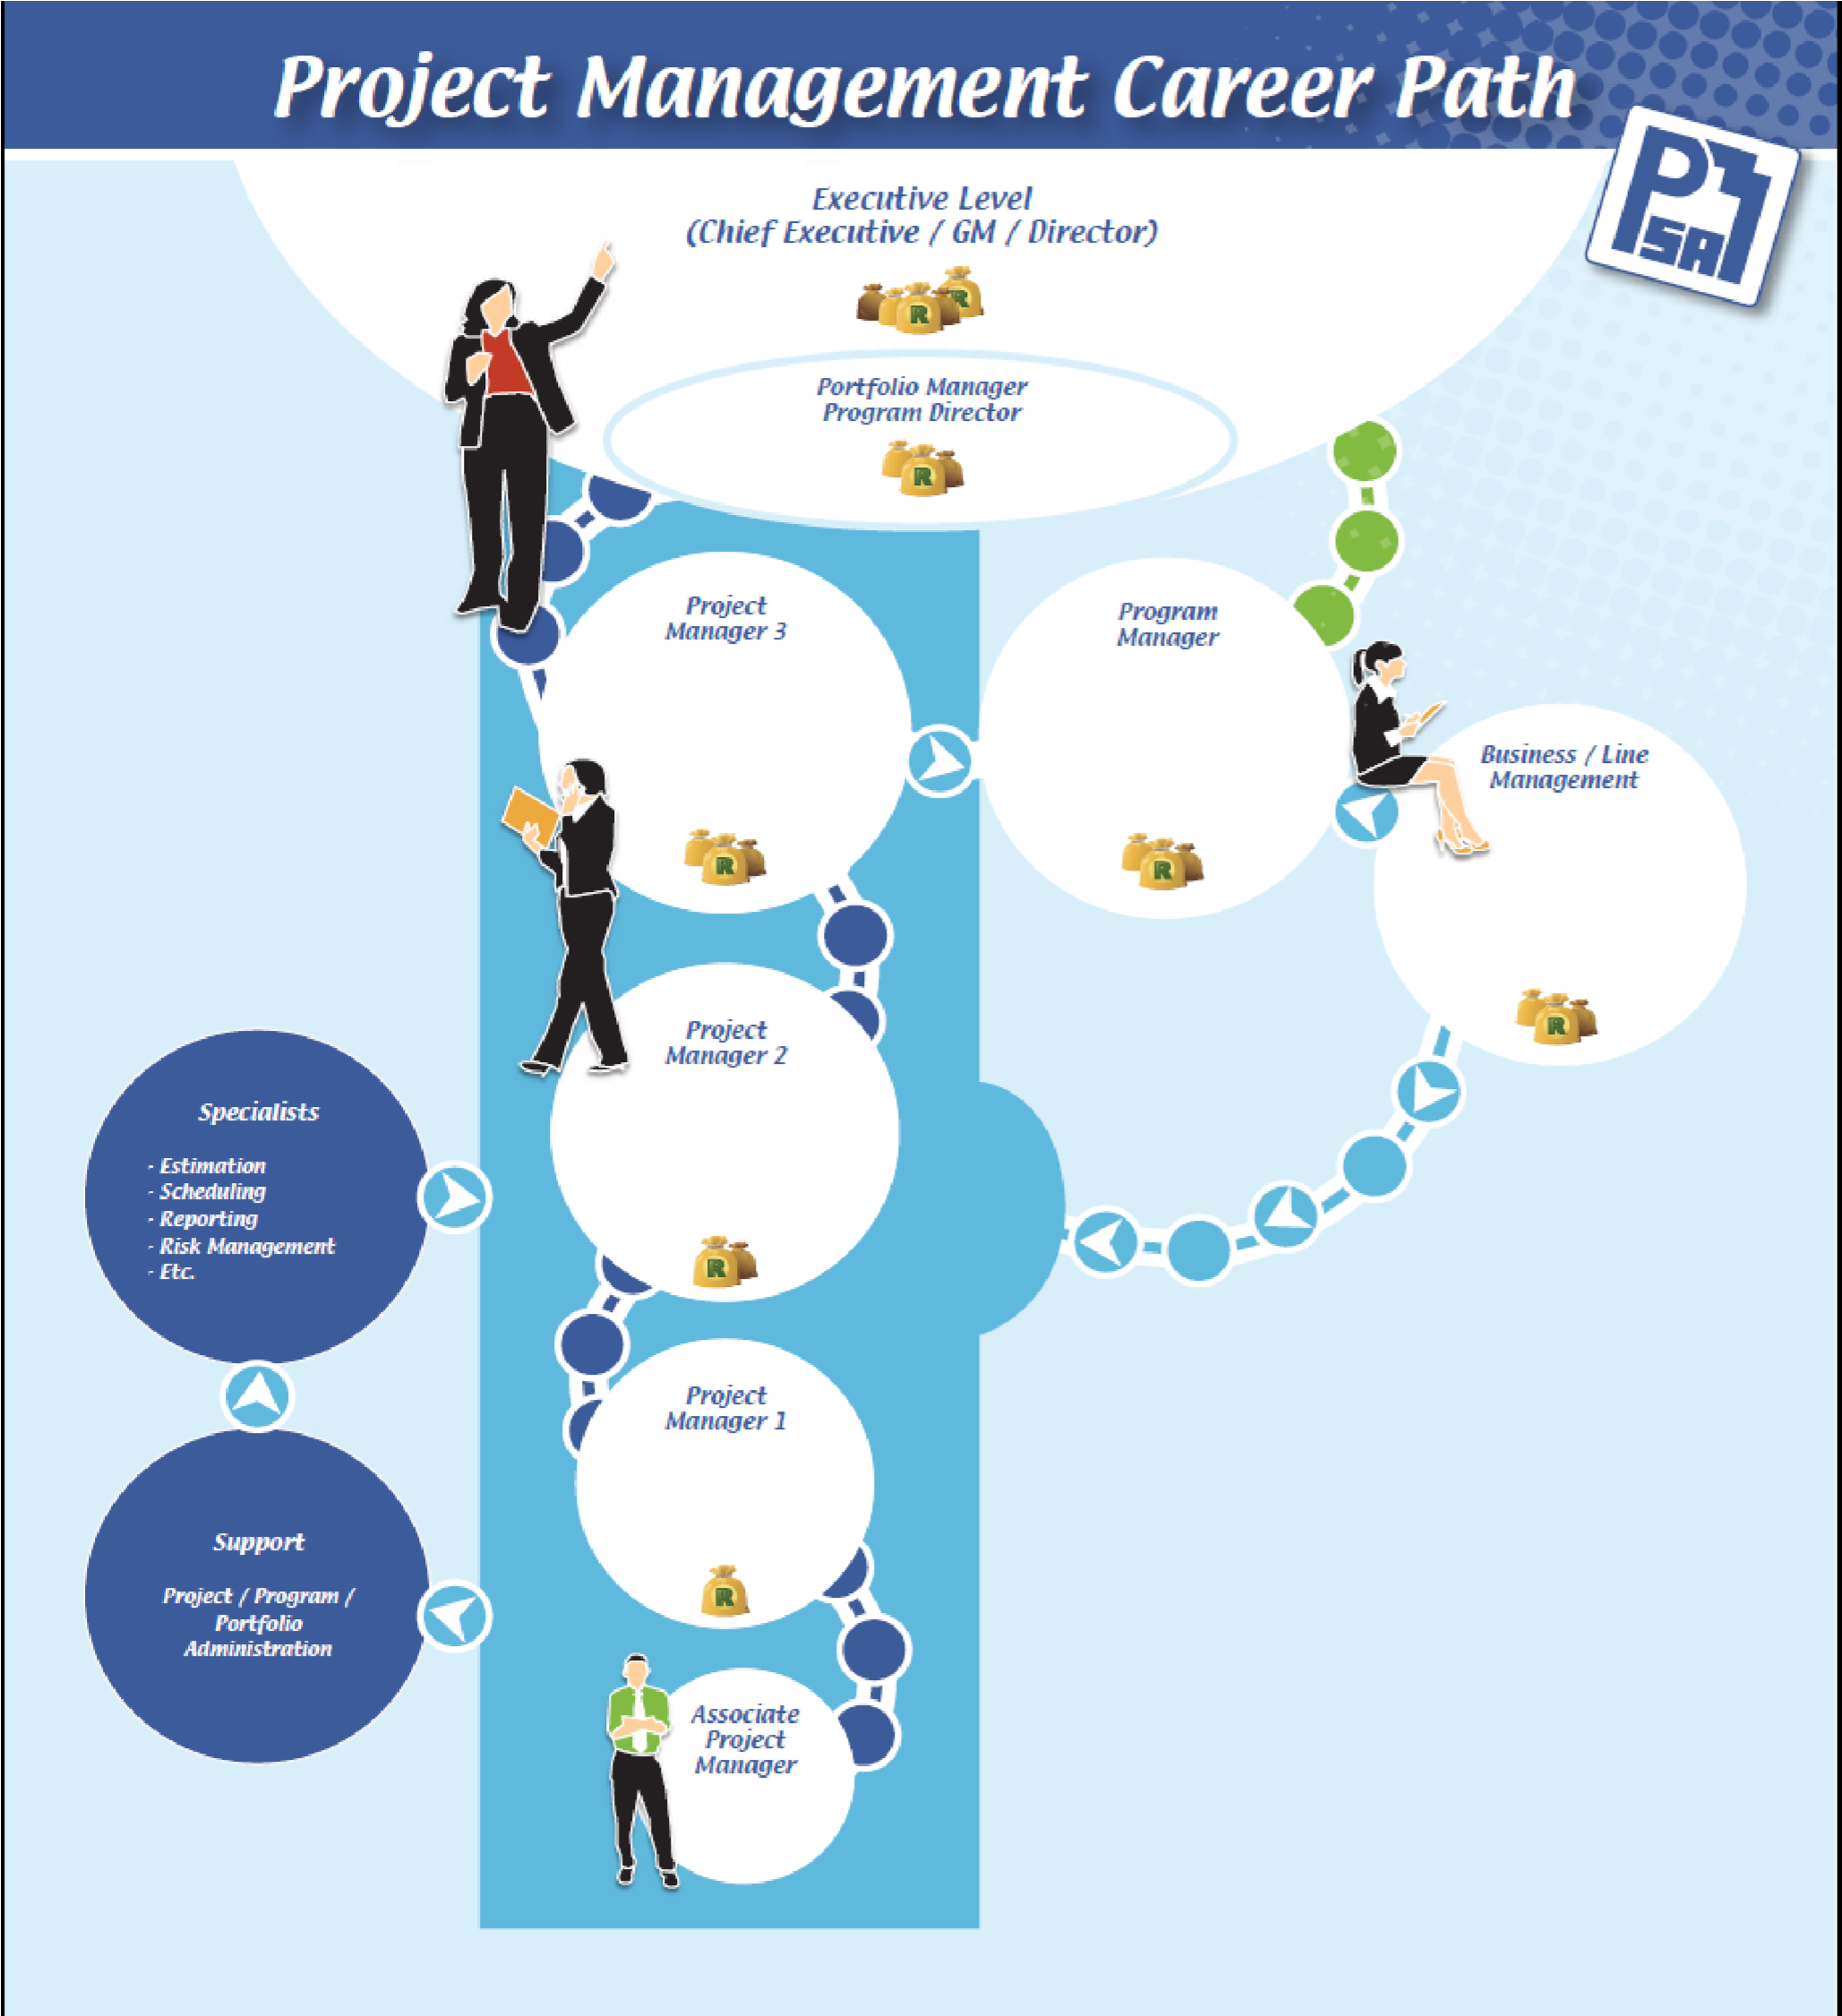 Project Management Career Path | Virtual Project Management Consulting